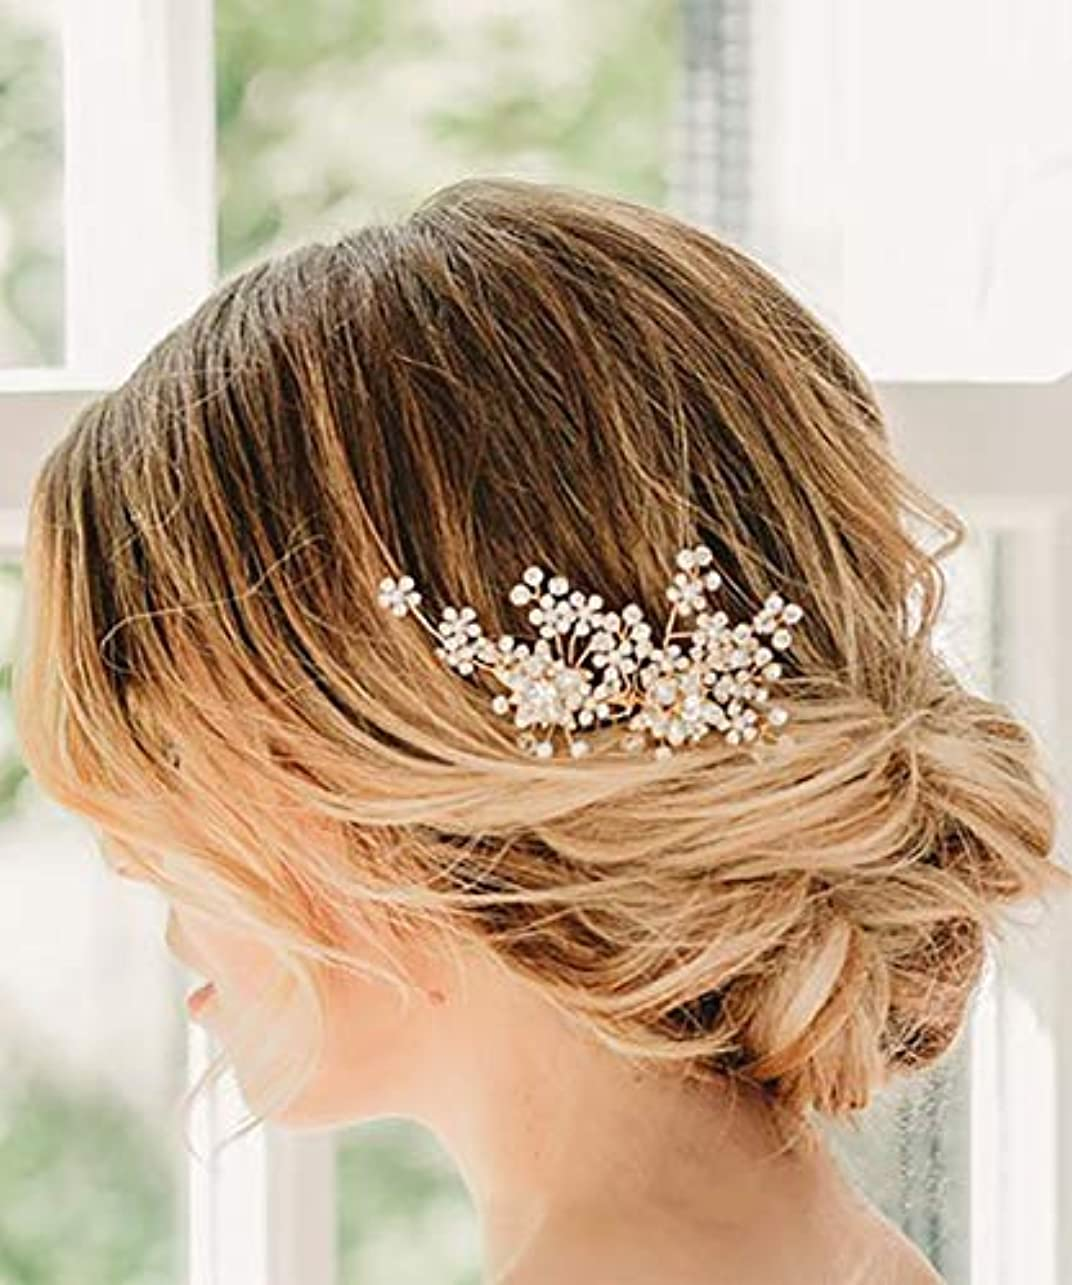 聞く集めるサイバースペースDeniferymakeup Dainty Bridal Floral Hair Comb Wedding Pearl Hair Comb Woodland Bridal Hair Accessories Flower...